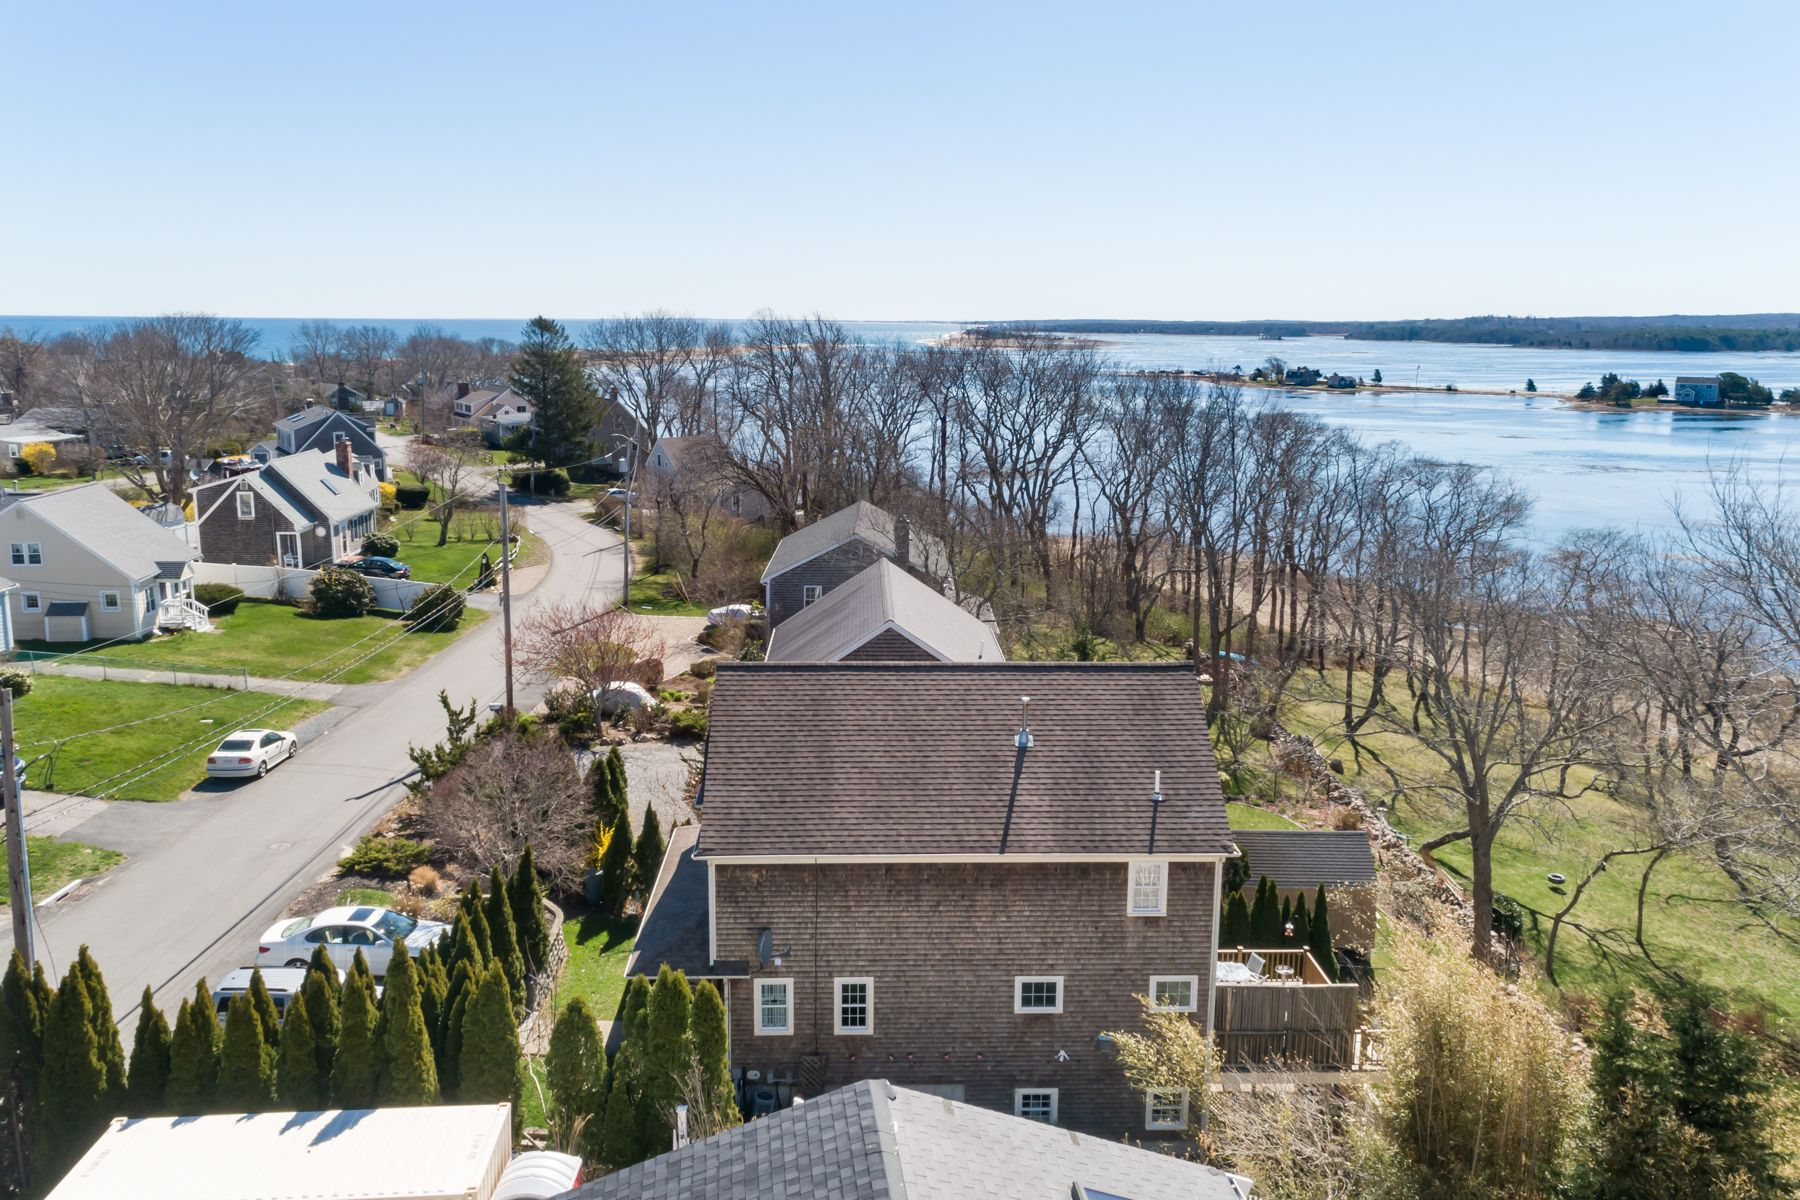 Single Family Homes for Active at 68 Dillingham Avenue Sandwich, Massachusetts 02563 United States